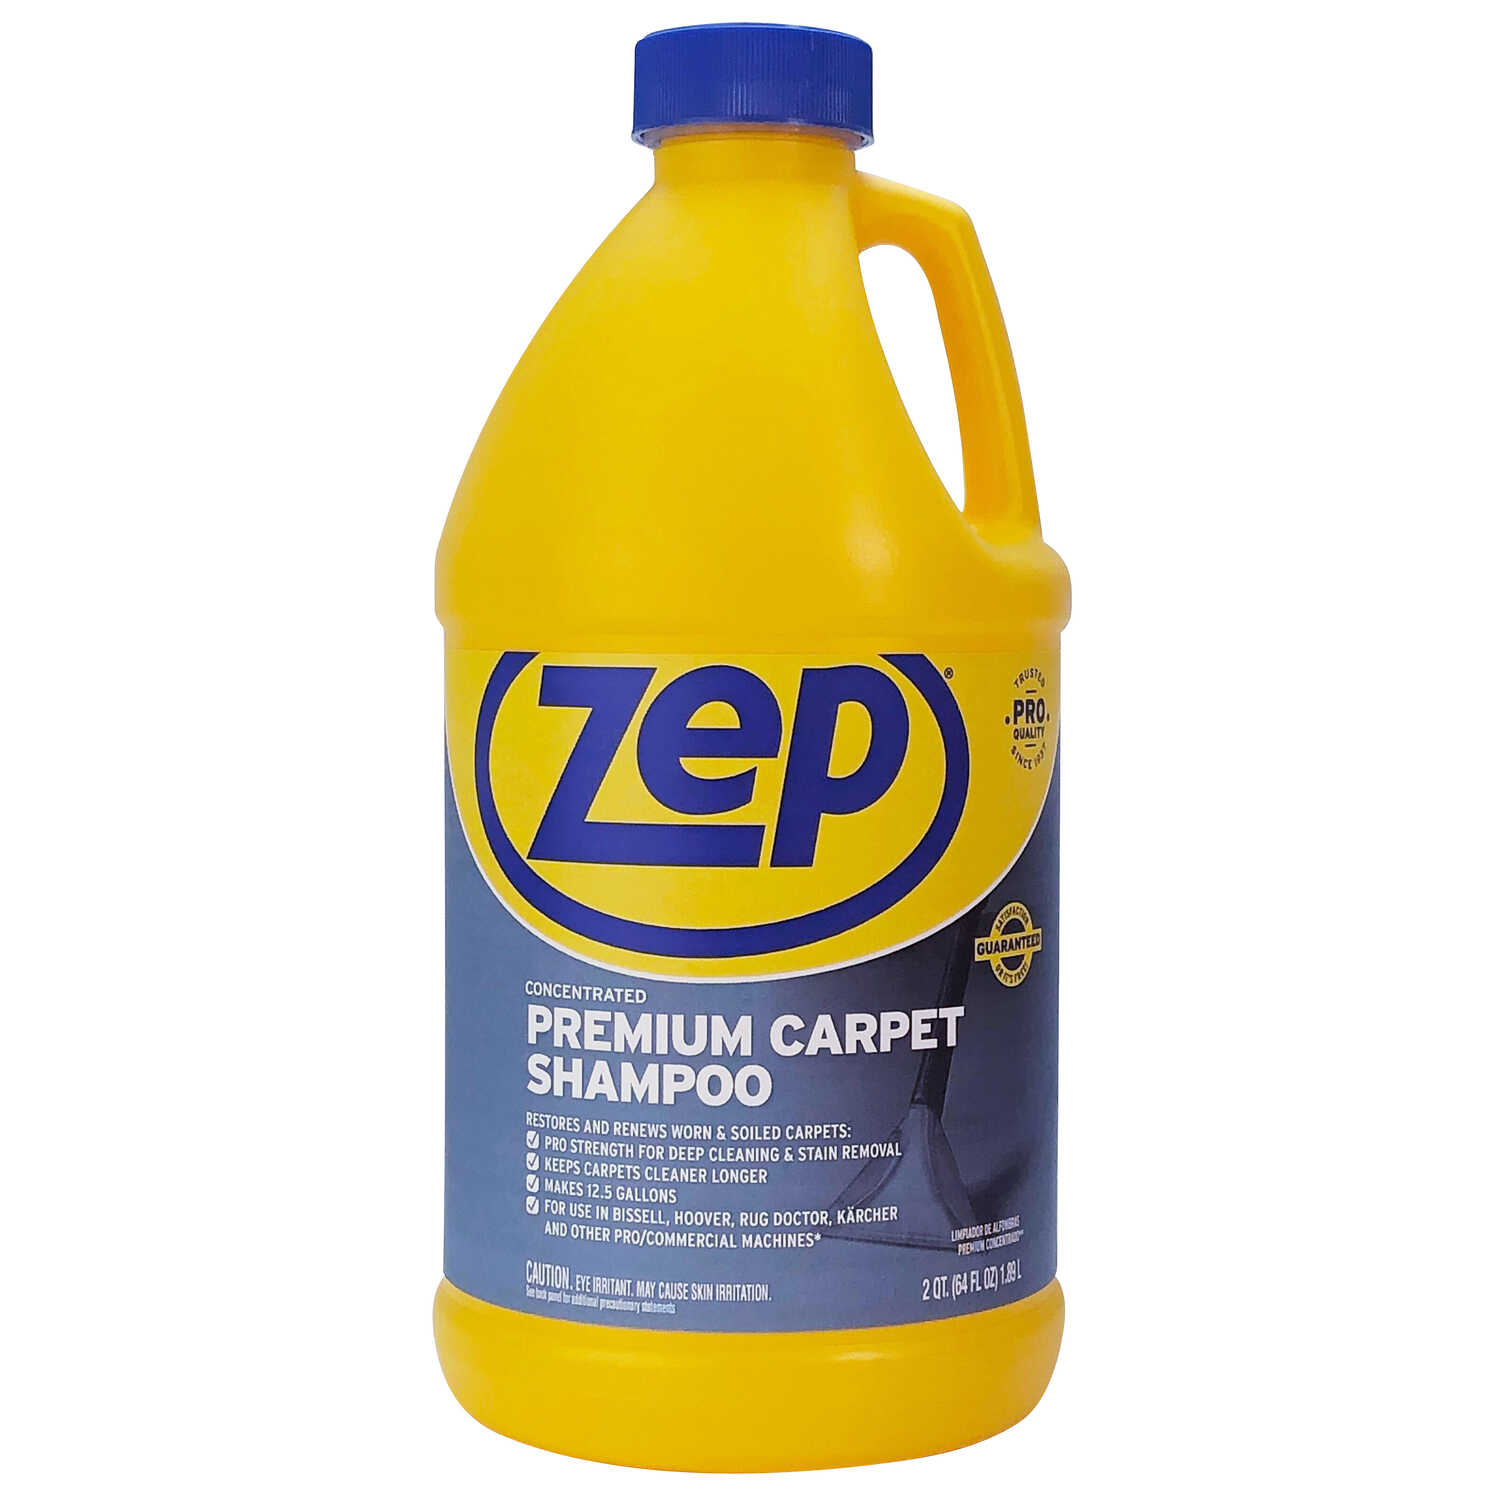 Zep  Commercial  Pleasant Scent Carpet Shampoo  64 oz. Liquid  Concentrated